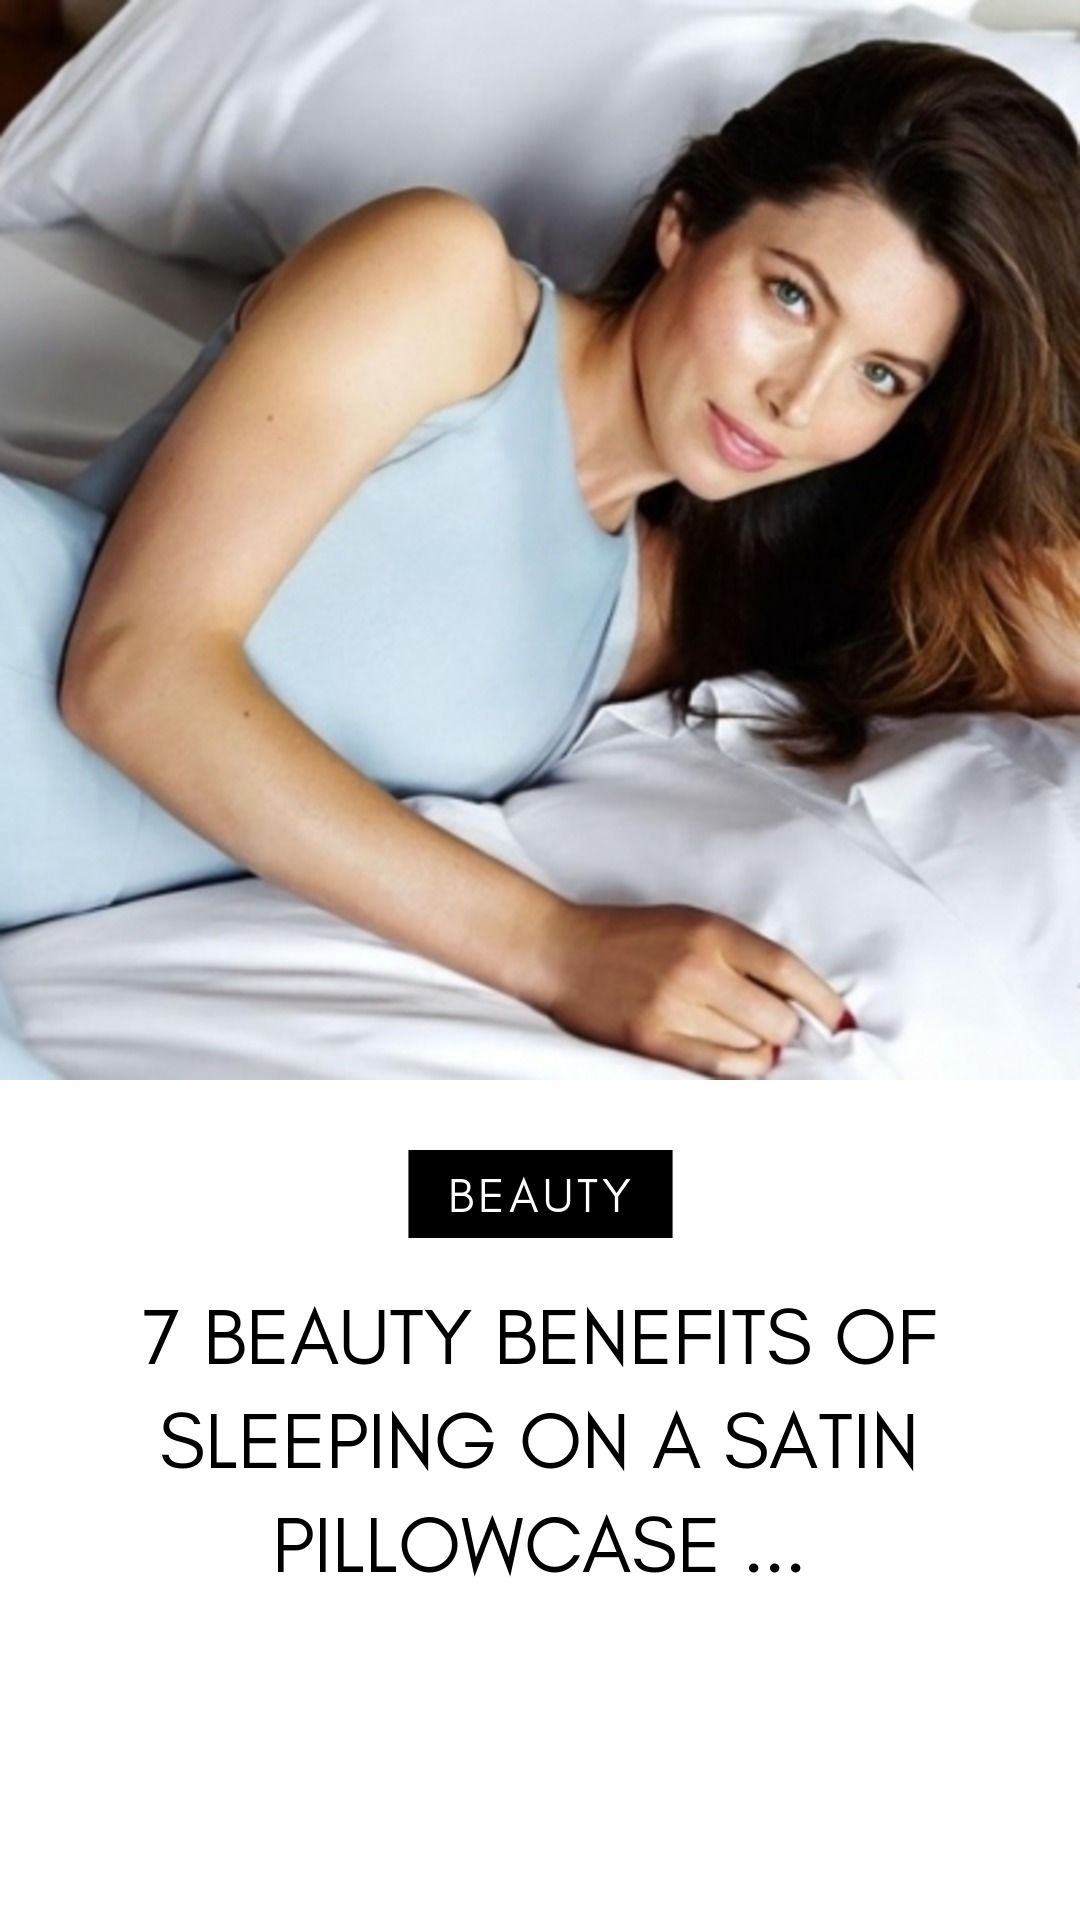 7 Beauty Benefits Of Sleeping On A Satin Pillowcase Satin Pillowcase Sleep Wrinkles Pillow Cases